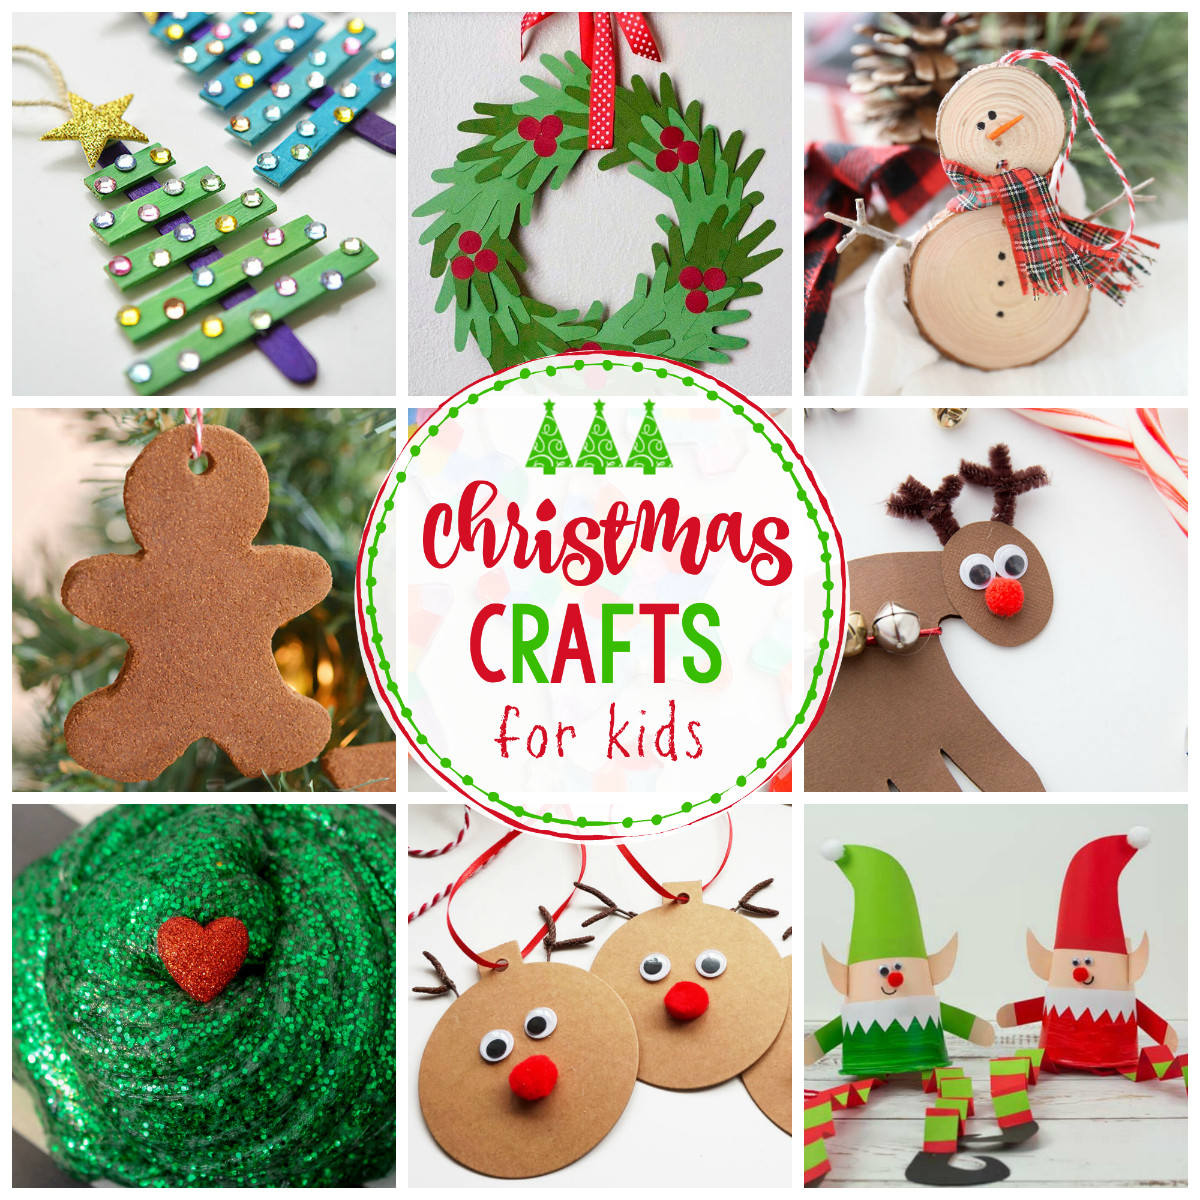 Homemade Crafts For Toddlers  25 Easy Christmas Crafts for Kids Crazy Little Projects